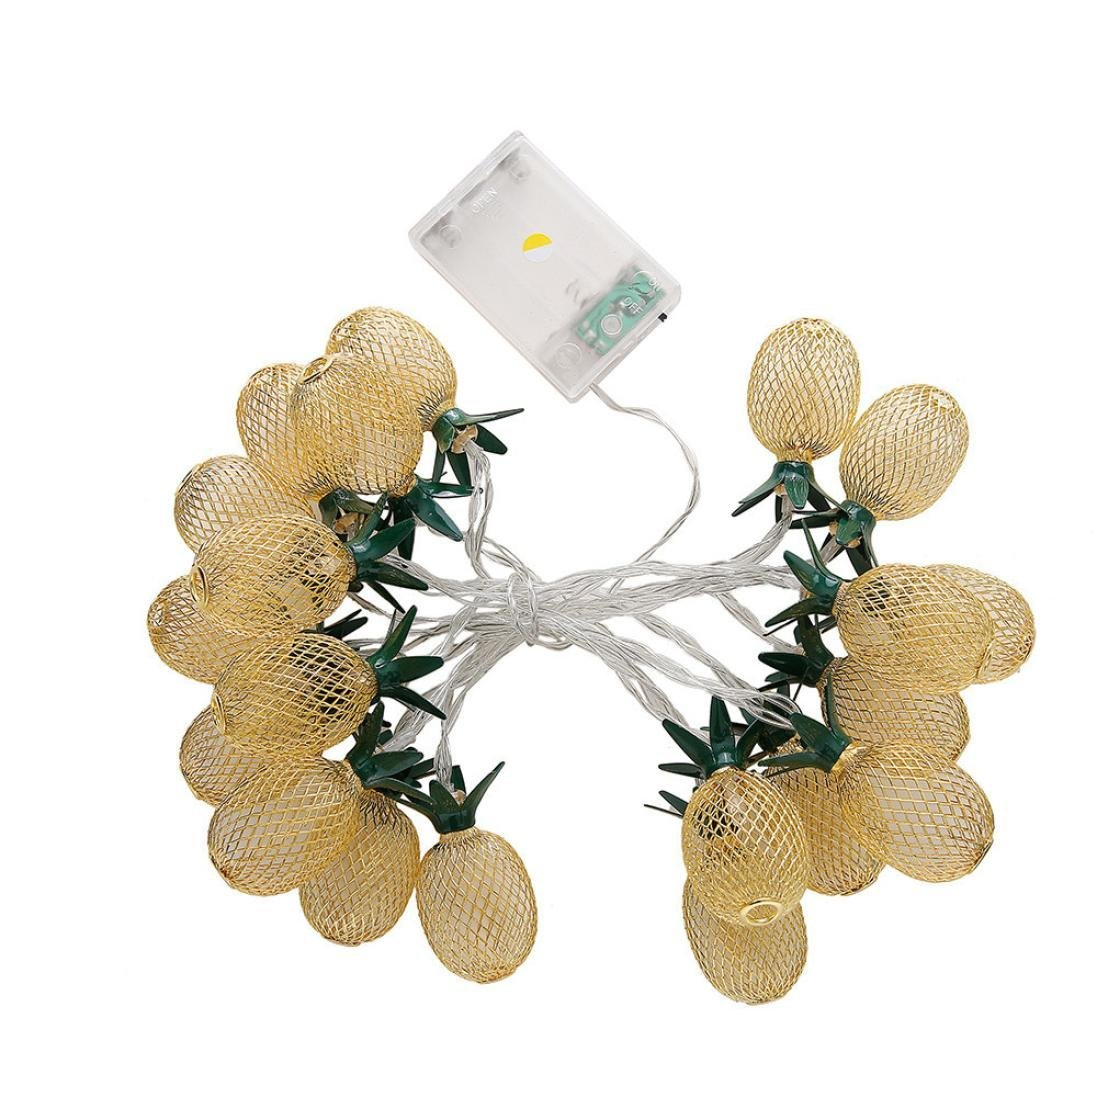 Aobiny Lamp string, LED Metal Hollowed Pineapple Holiday Decorative Lamp String (Gold) by Aobiny (Image #1)